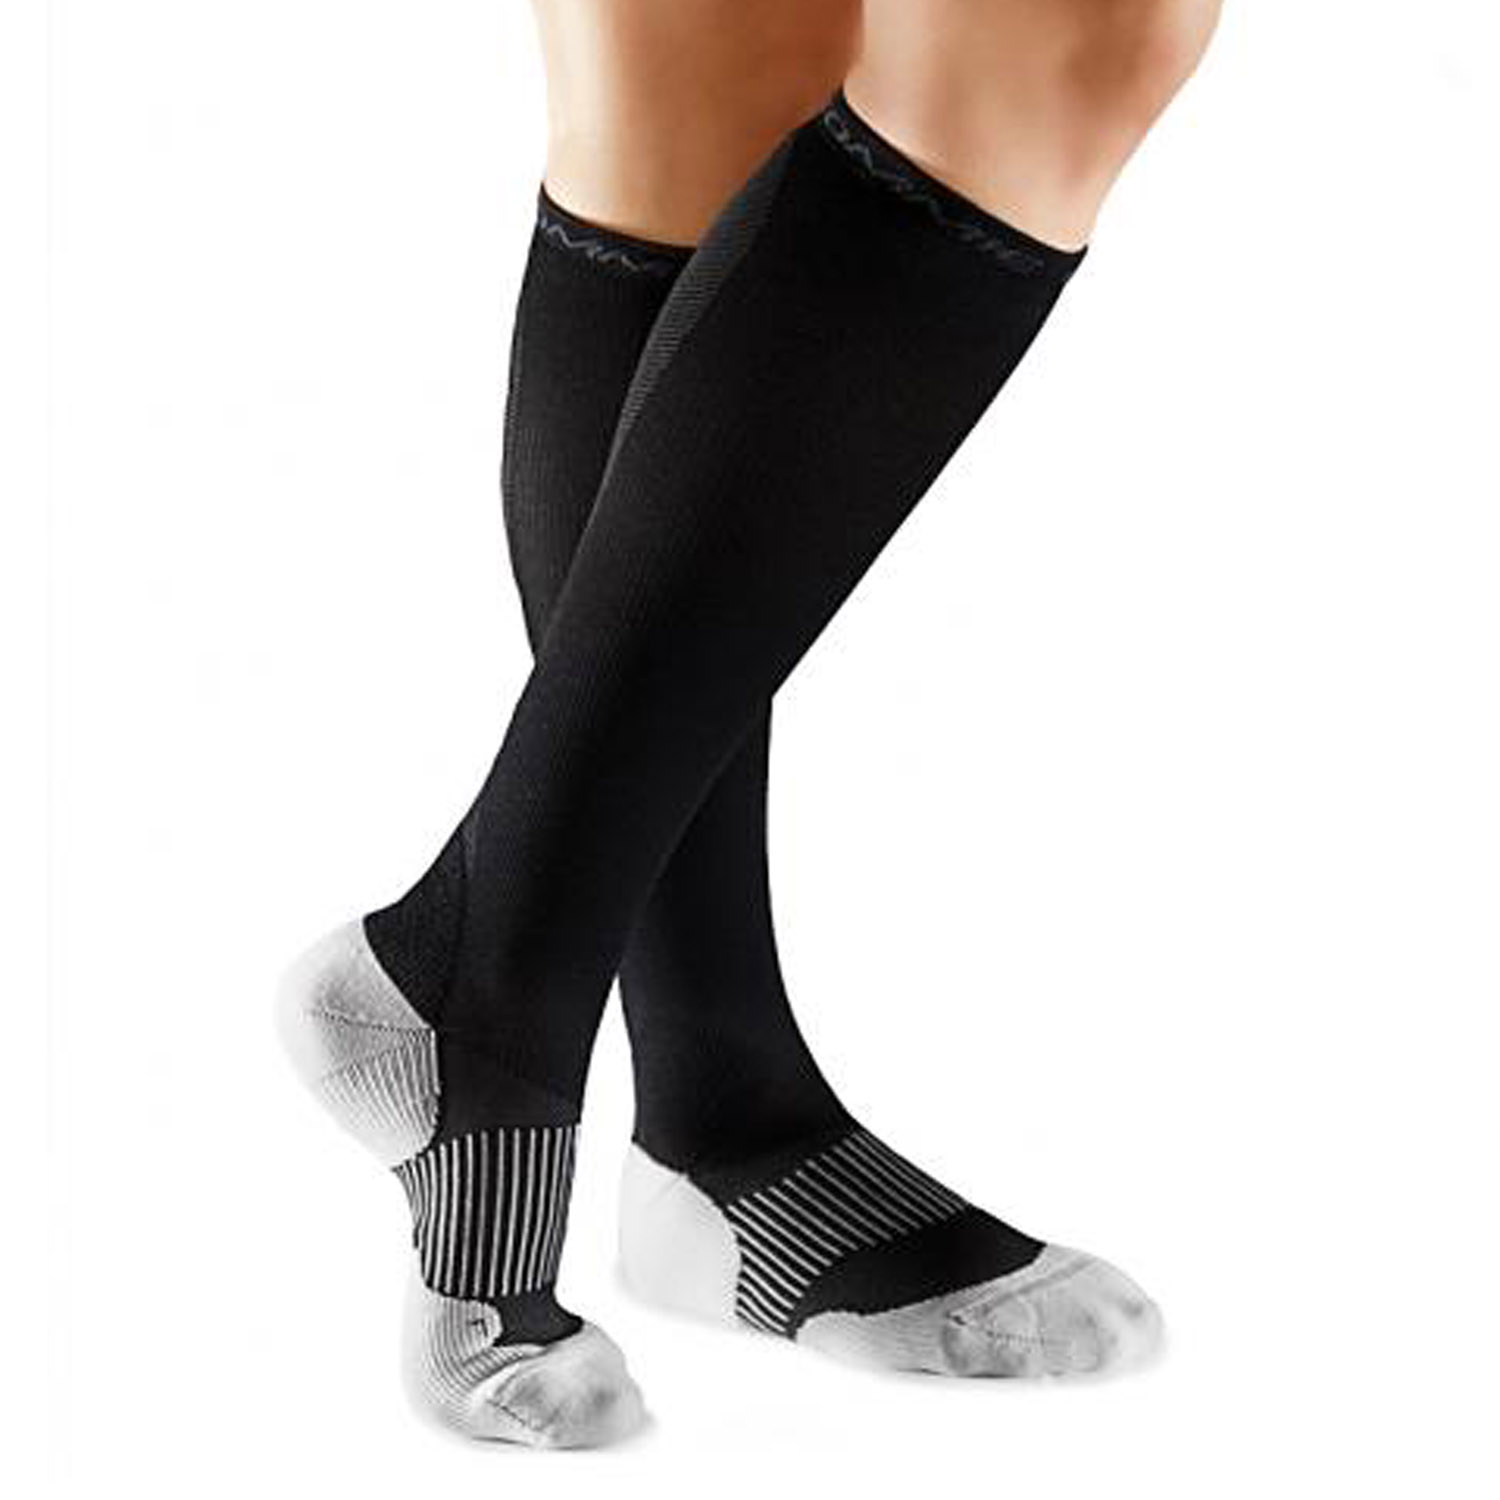 47d0f6746d TOMMIE COPPER Womens Perf Compression Athletic Calf Socks NON REIMBURSABLE  ITEM (PX976)